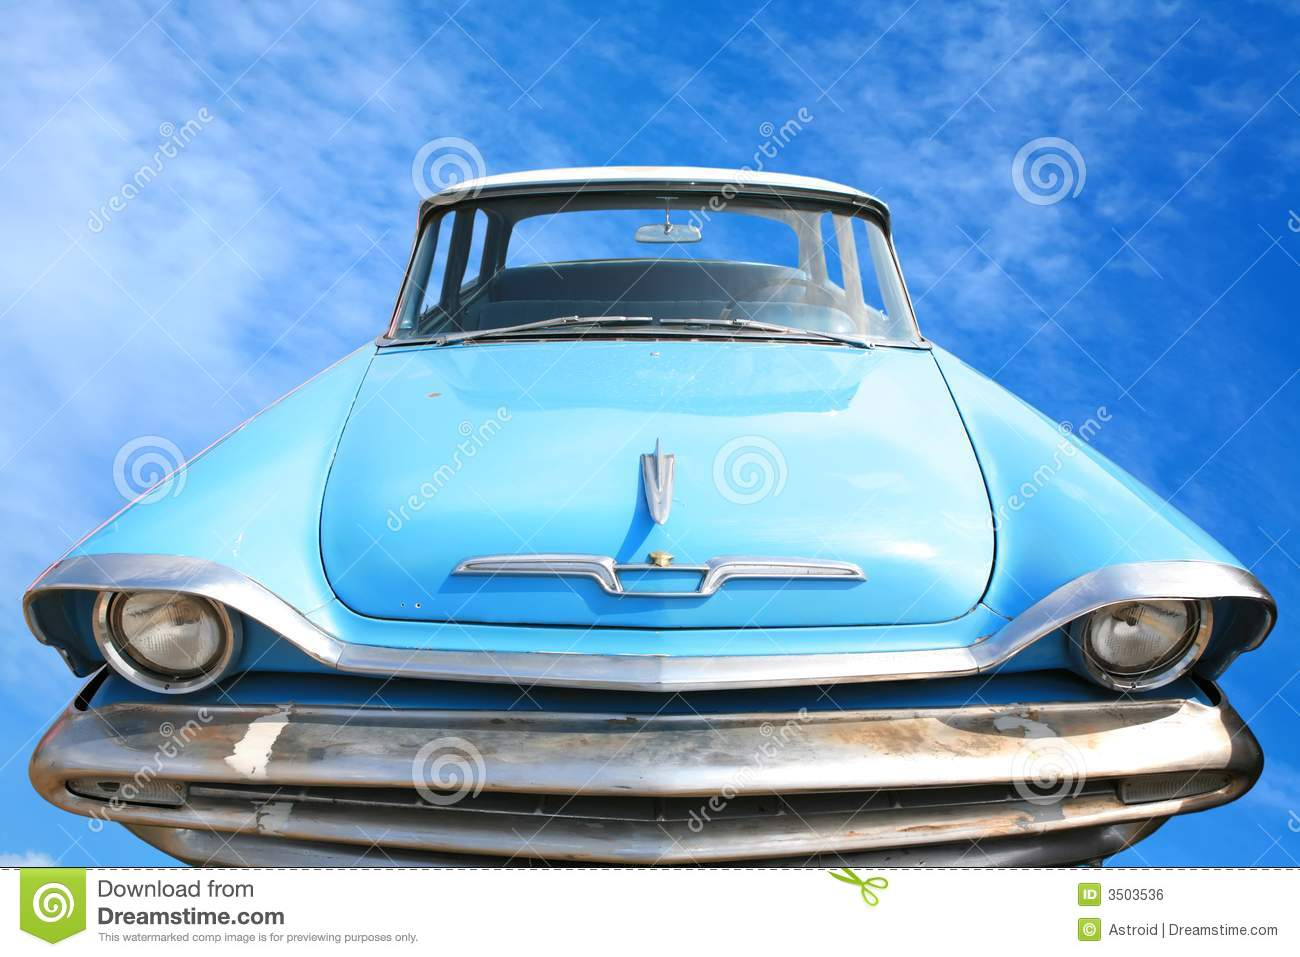 Vintage American Car 50-60\'s Stock Photo - Image of scratches, blue ...